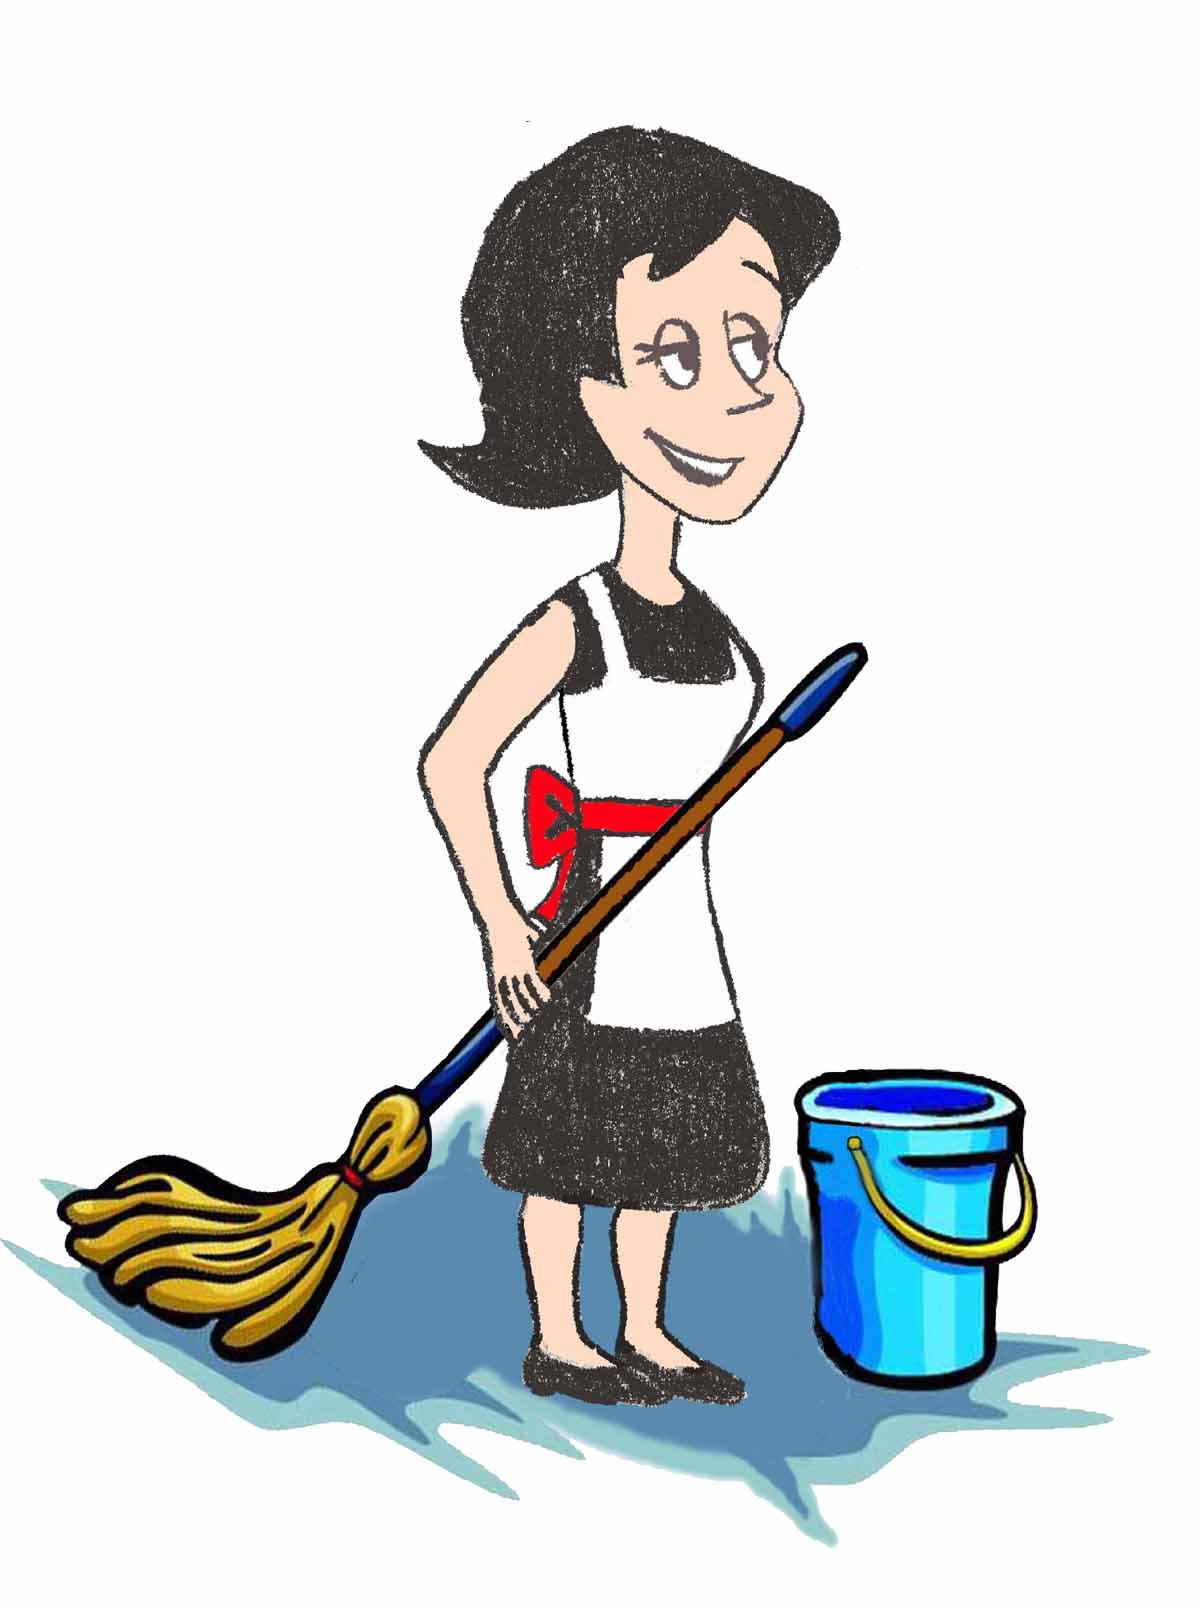 Cleaning service clip art.